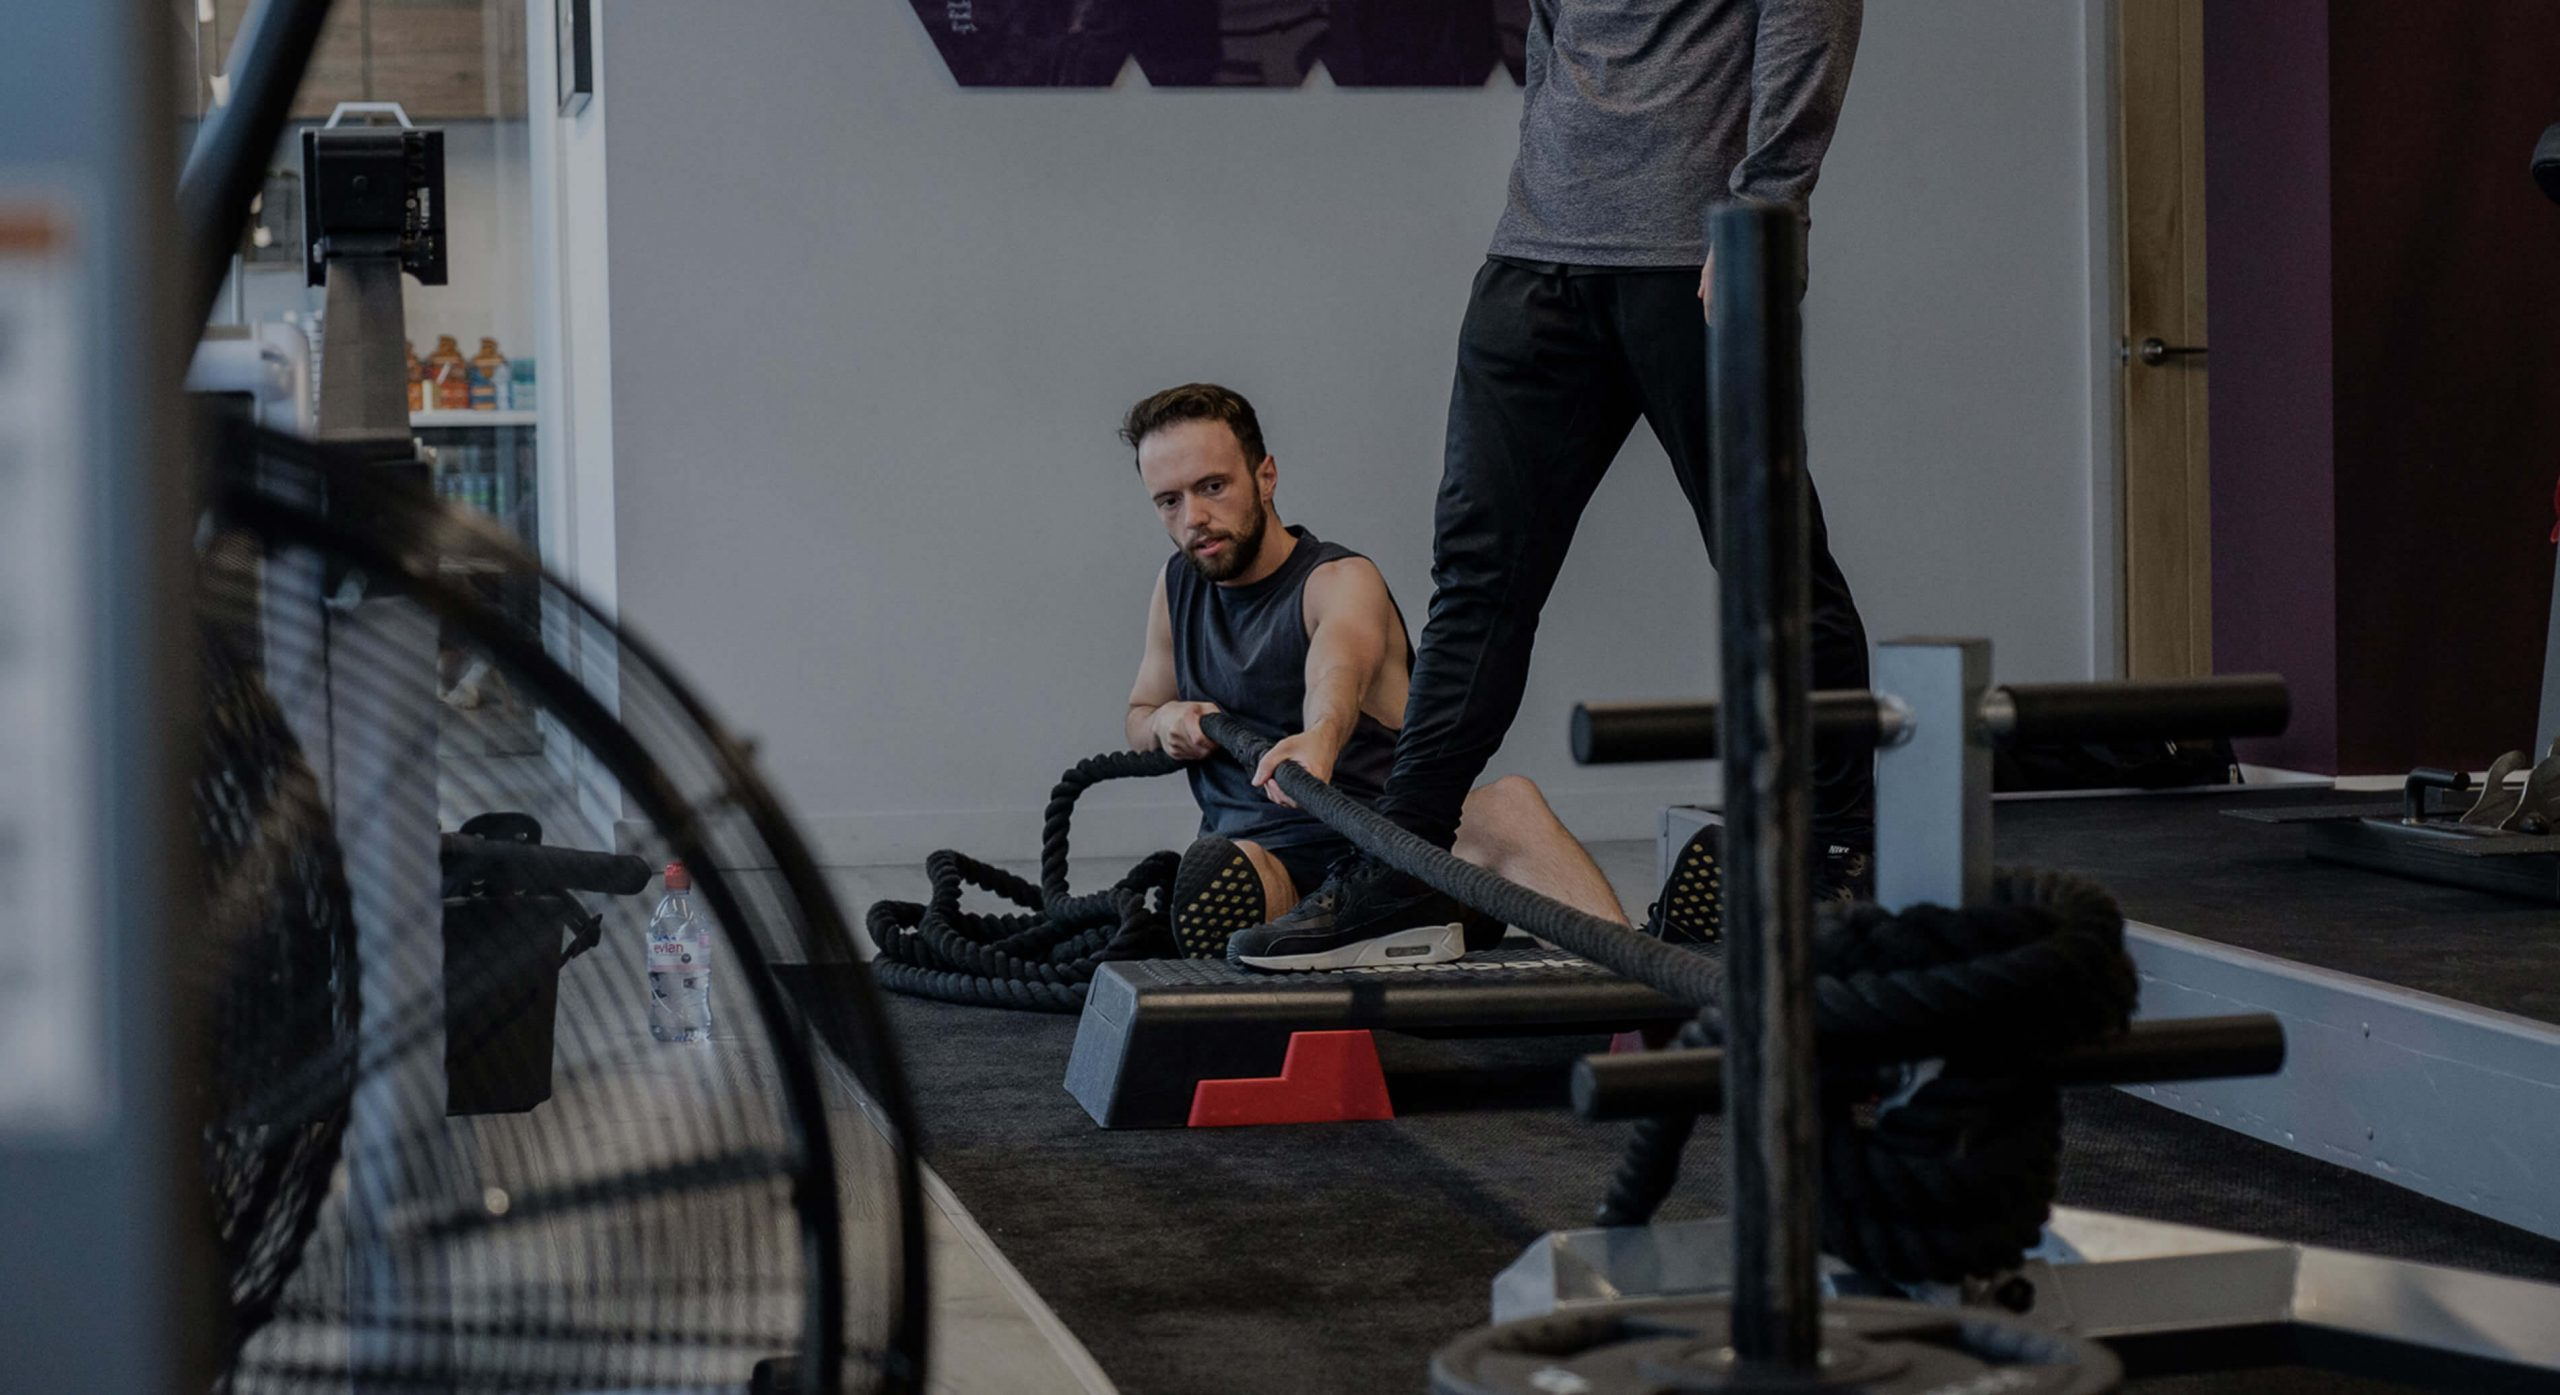 Personal training session - Manchester Riverside facility - luxury gym in manchester